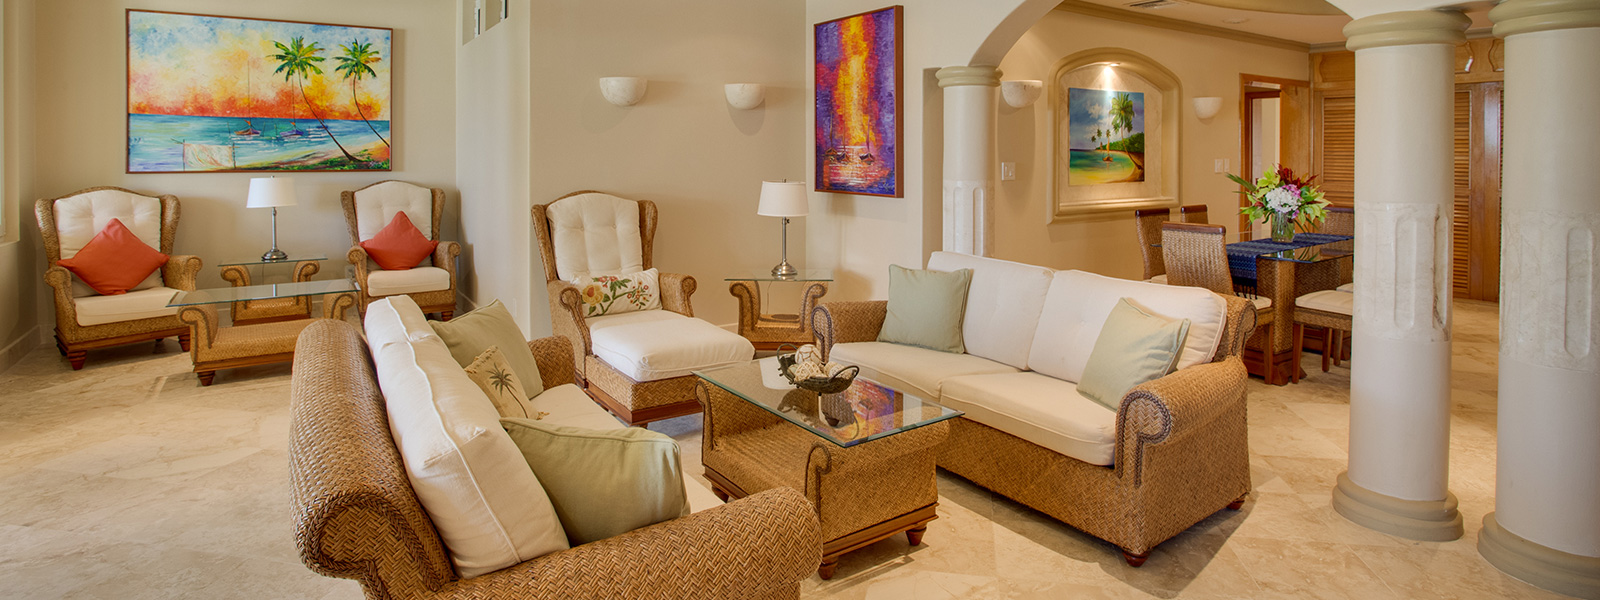 Living Room Rentals Villa Del Paraiso  Belize Luxury Beachfront Vacation Rental